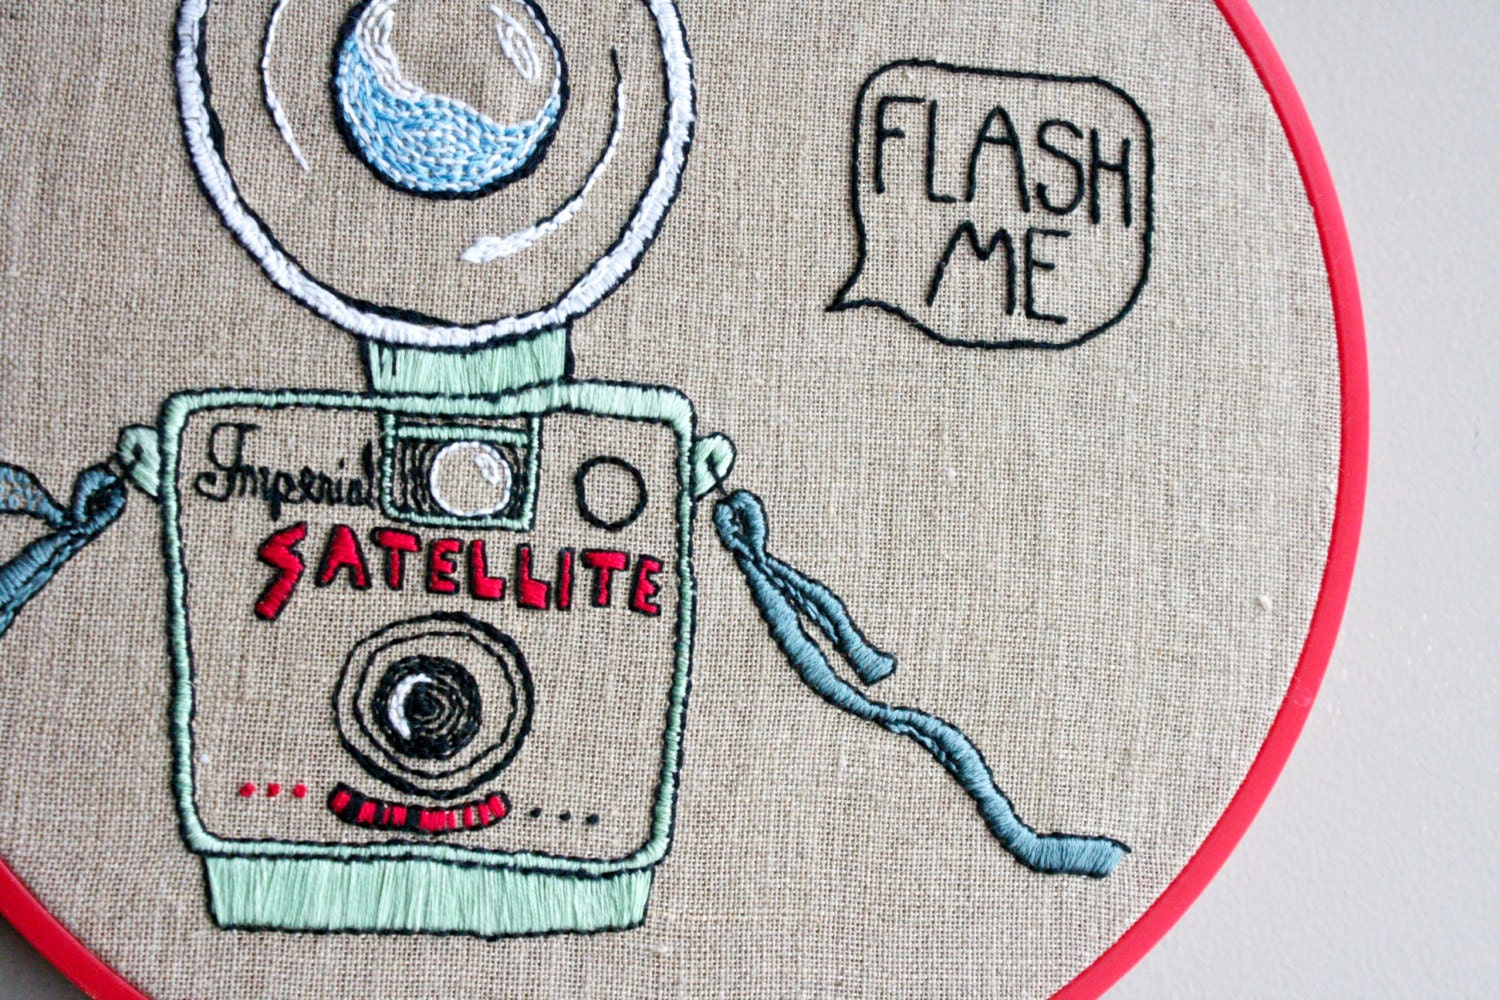 Vintage camera embroidery flash me funny by mumre on